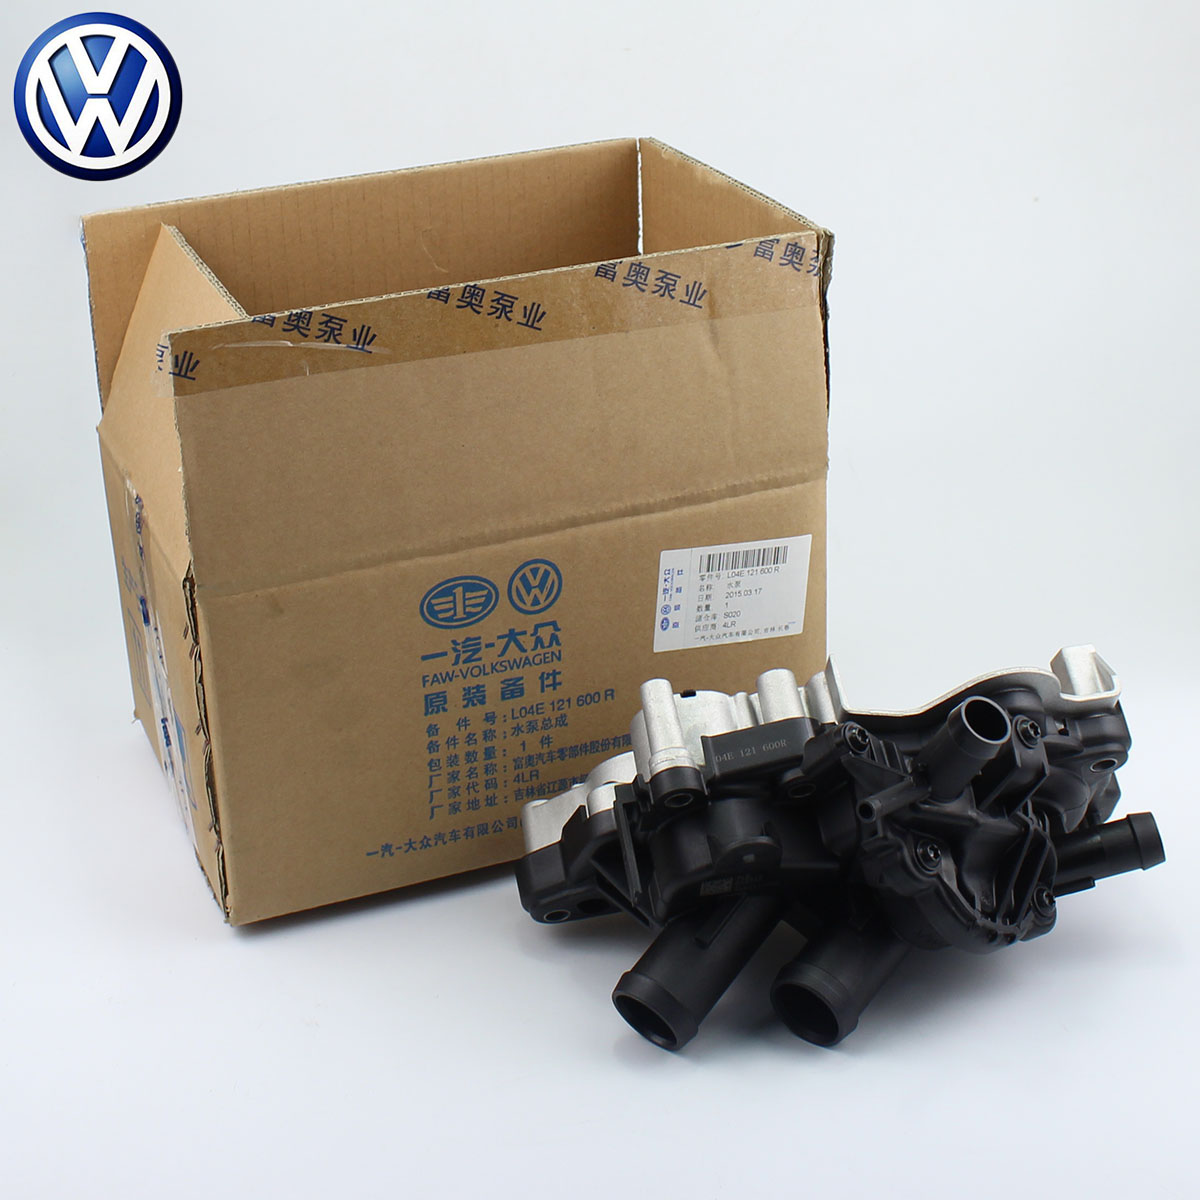 Engine Water Pump Kit OEM 04E 121 600 BF For VW Jetta Mk2 Golf MK7/Sportsvan Passat B8 water pump for d905 engine utility vehicle rtv1100cw9 rtv100rw9